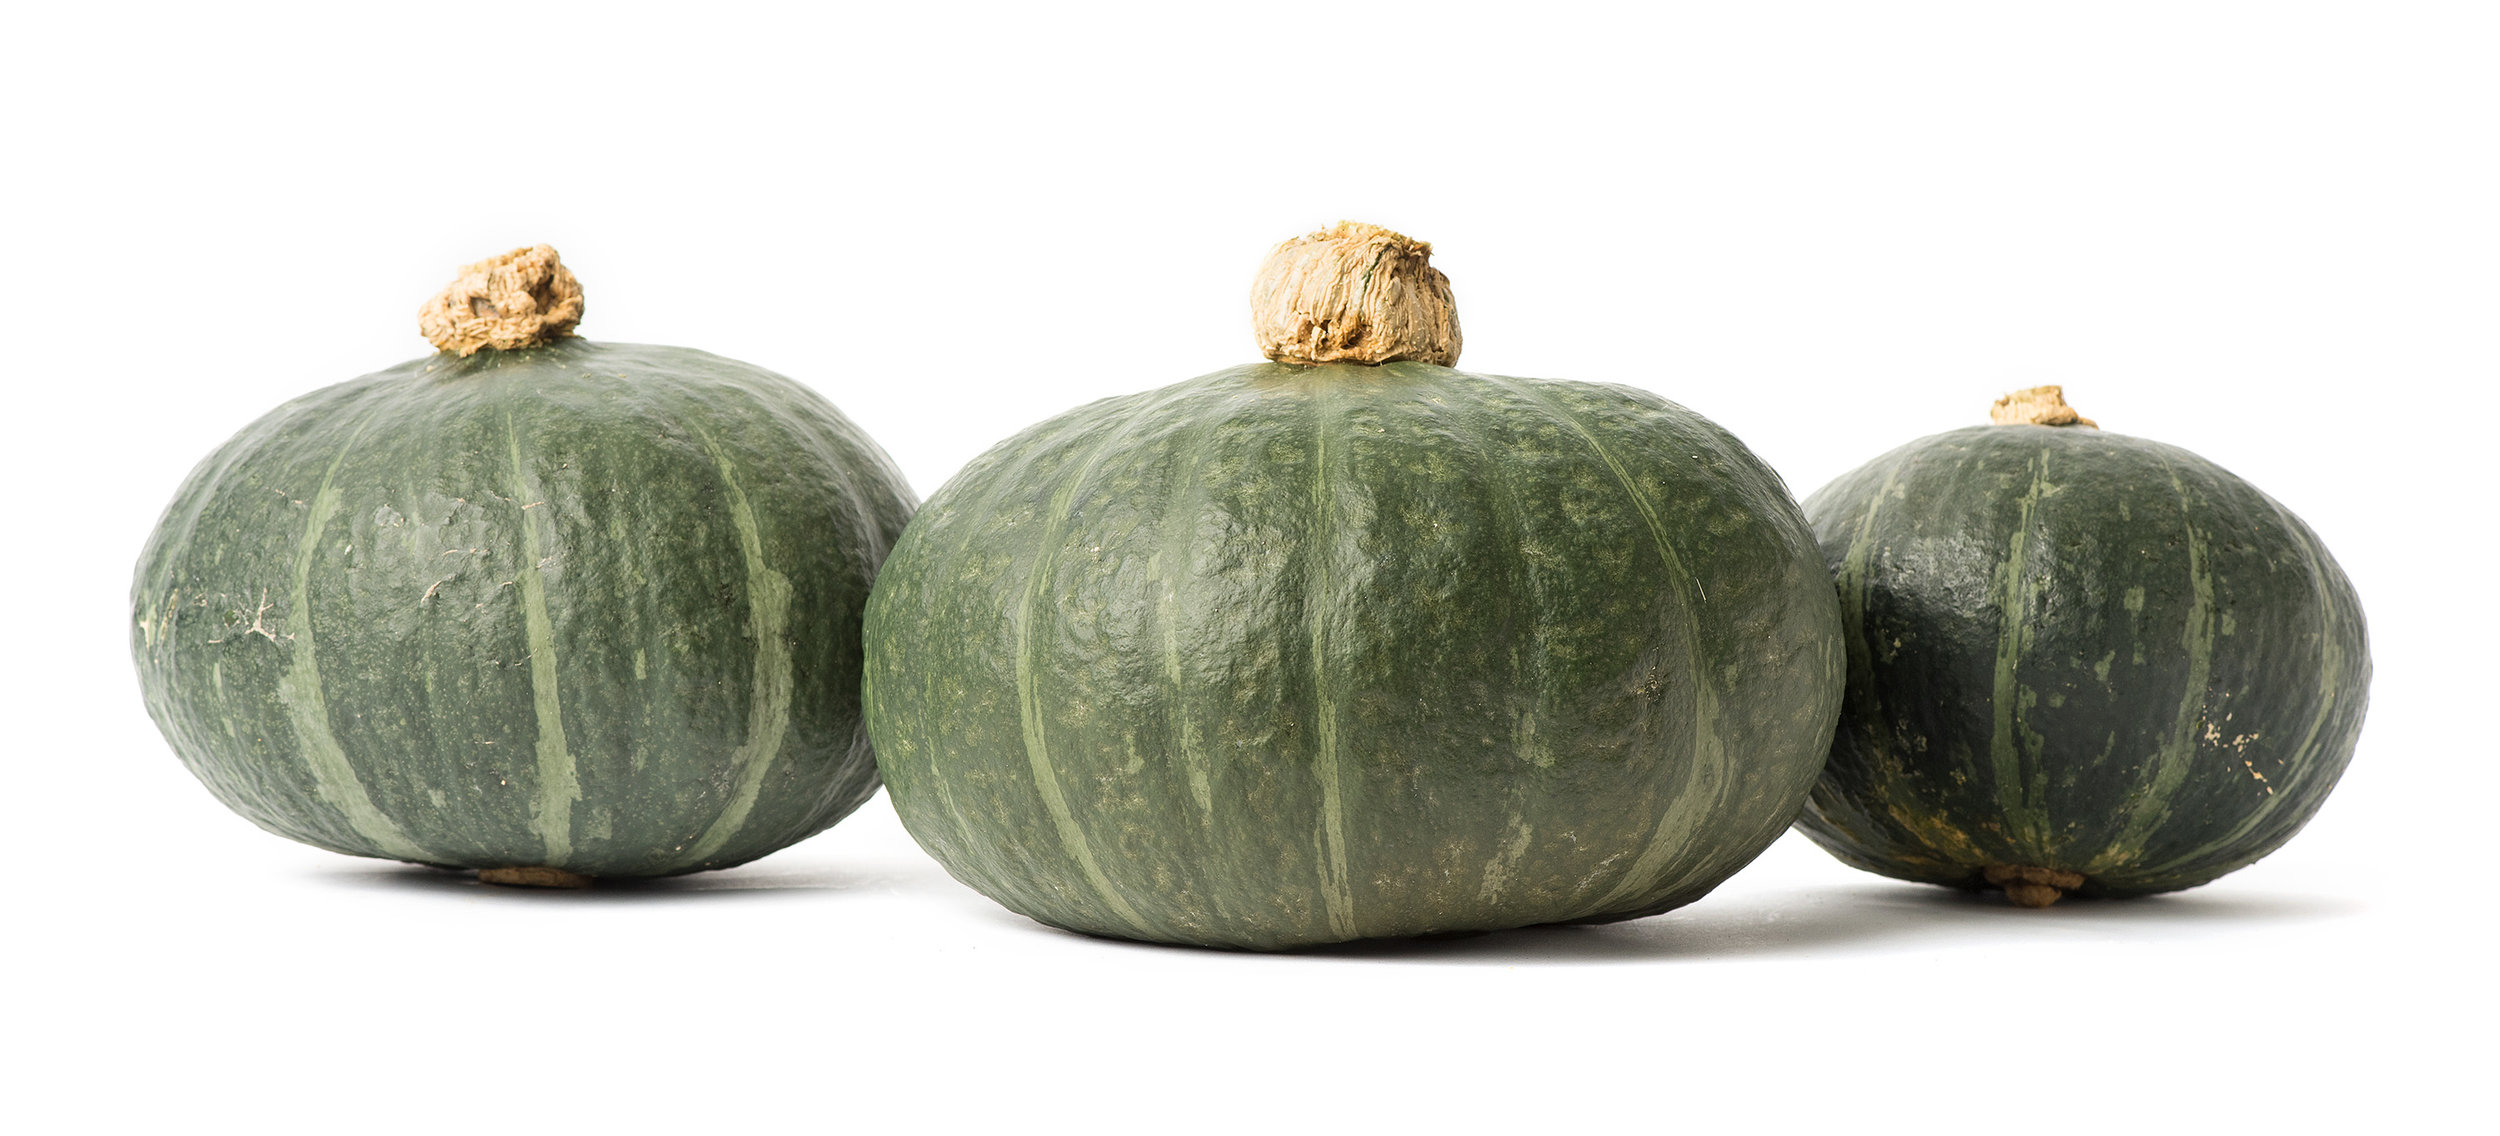 Use a Sweet Mama or other green kabocha.....